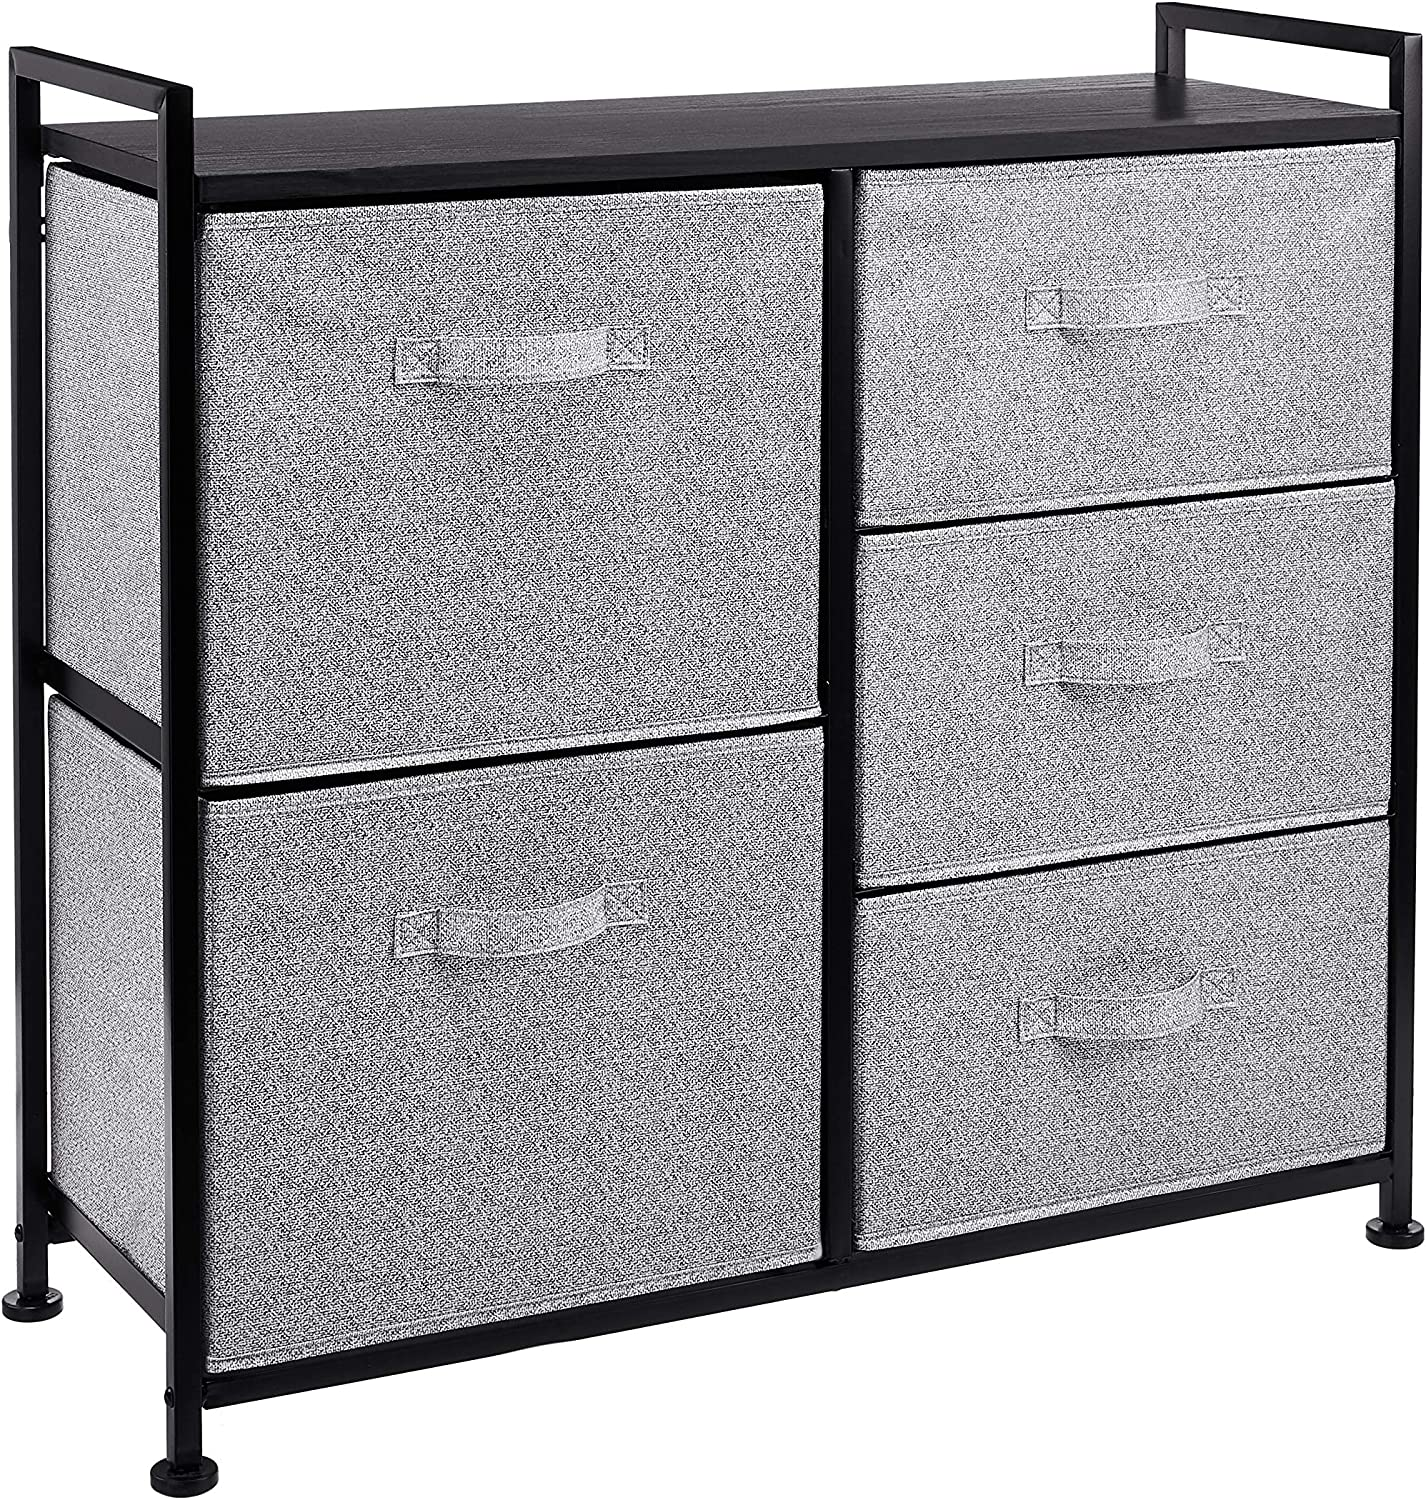 AmazonBasics Fabric 5-Drawer Storage Organizer Unit for Closet, Black